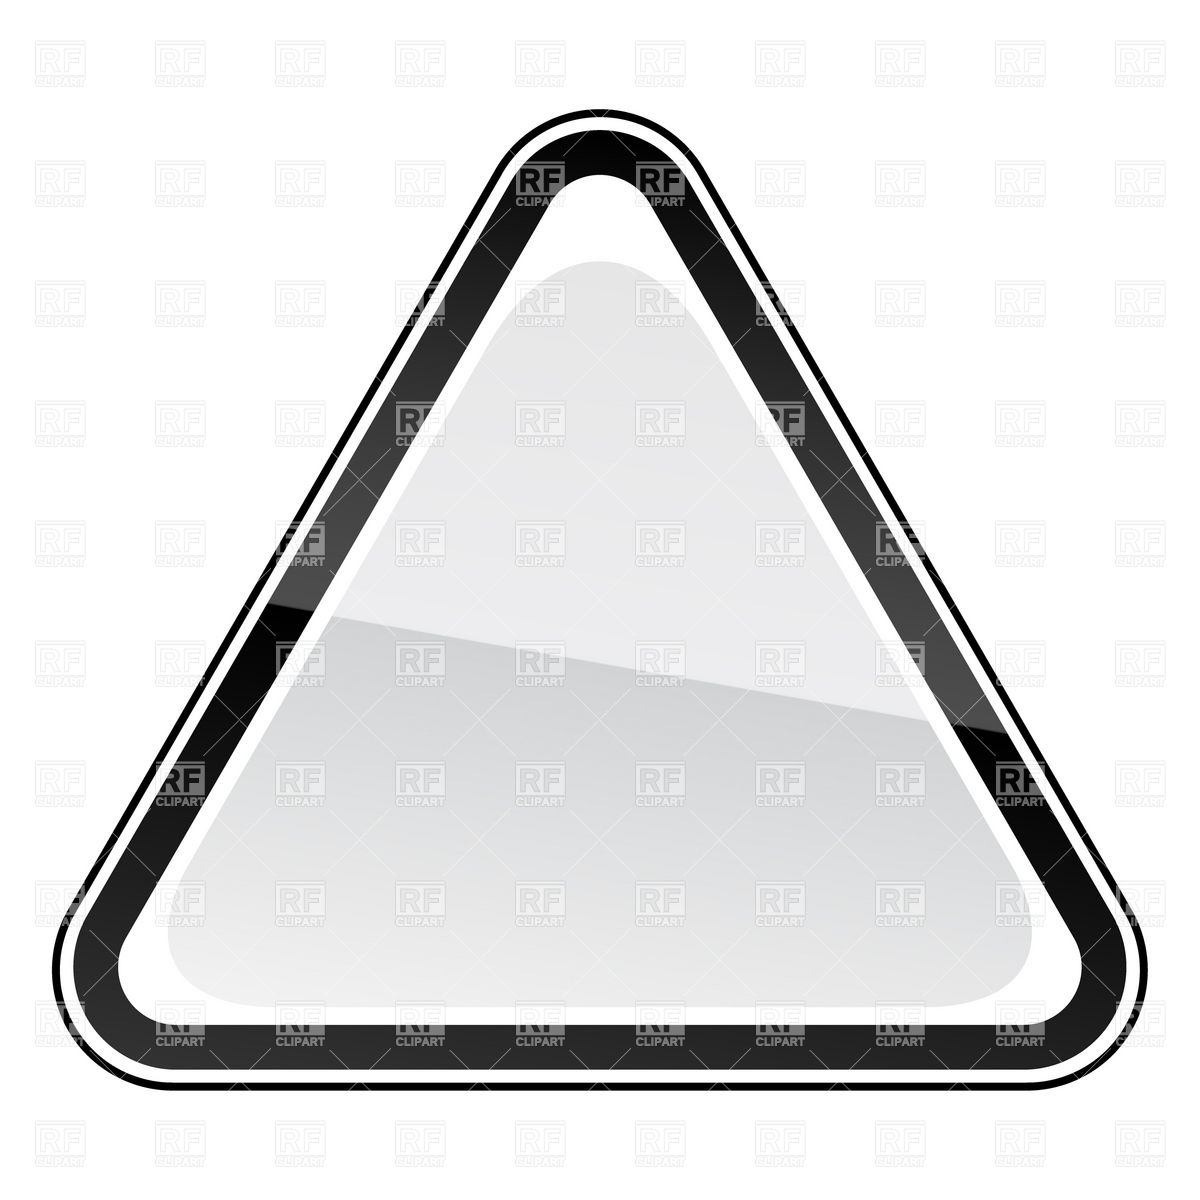 Blank road sign clipart black and white.